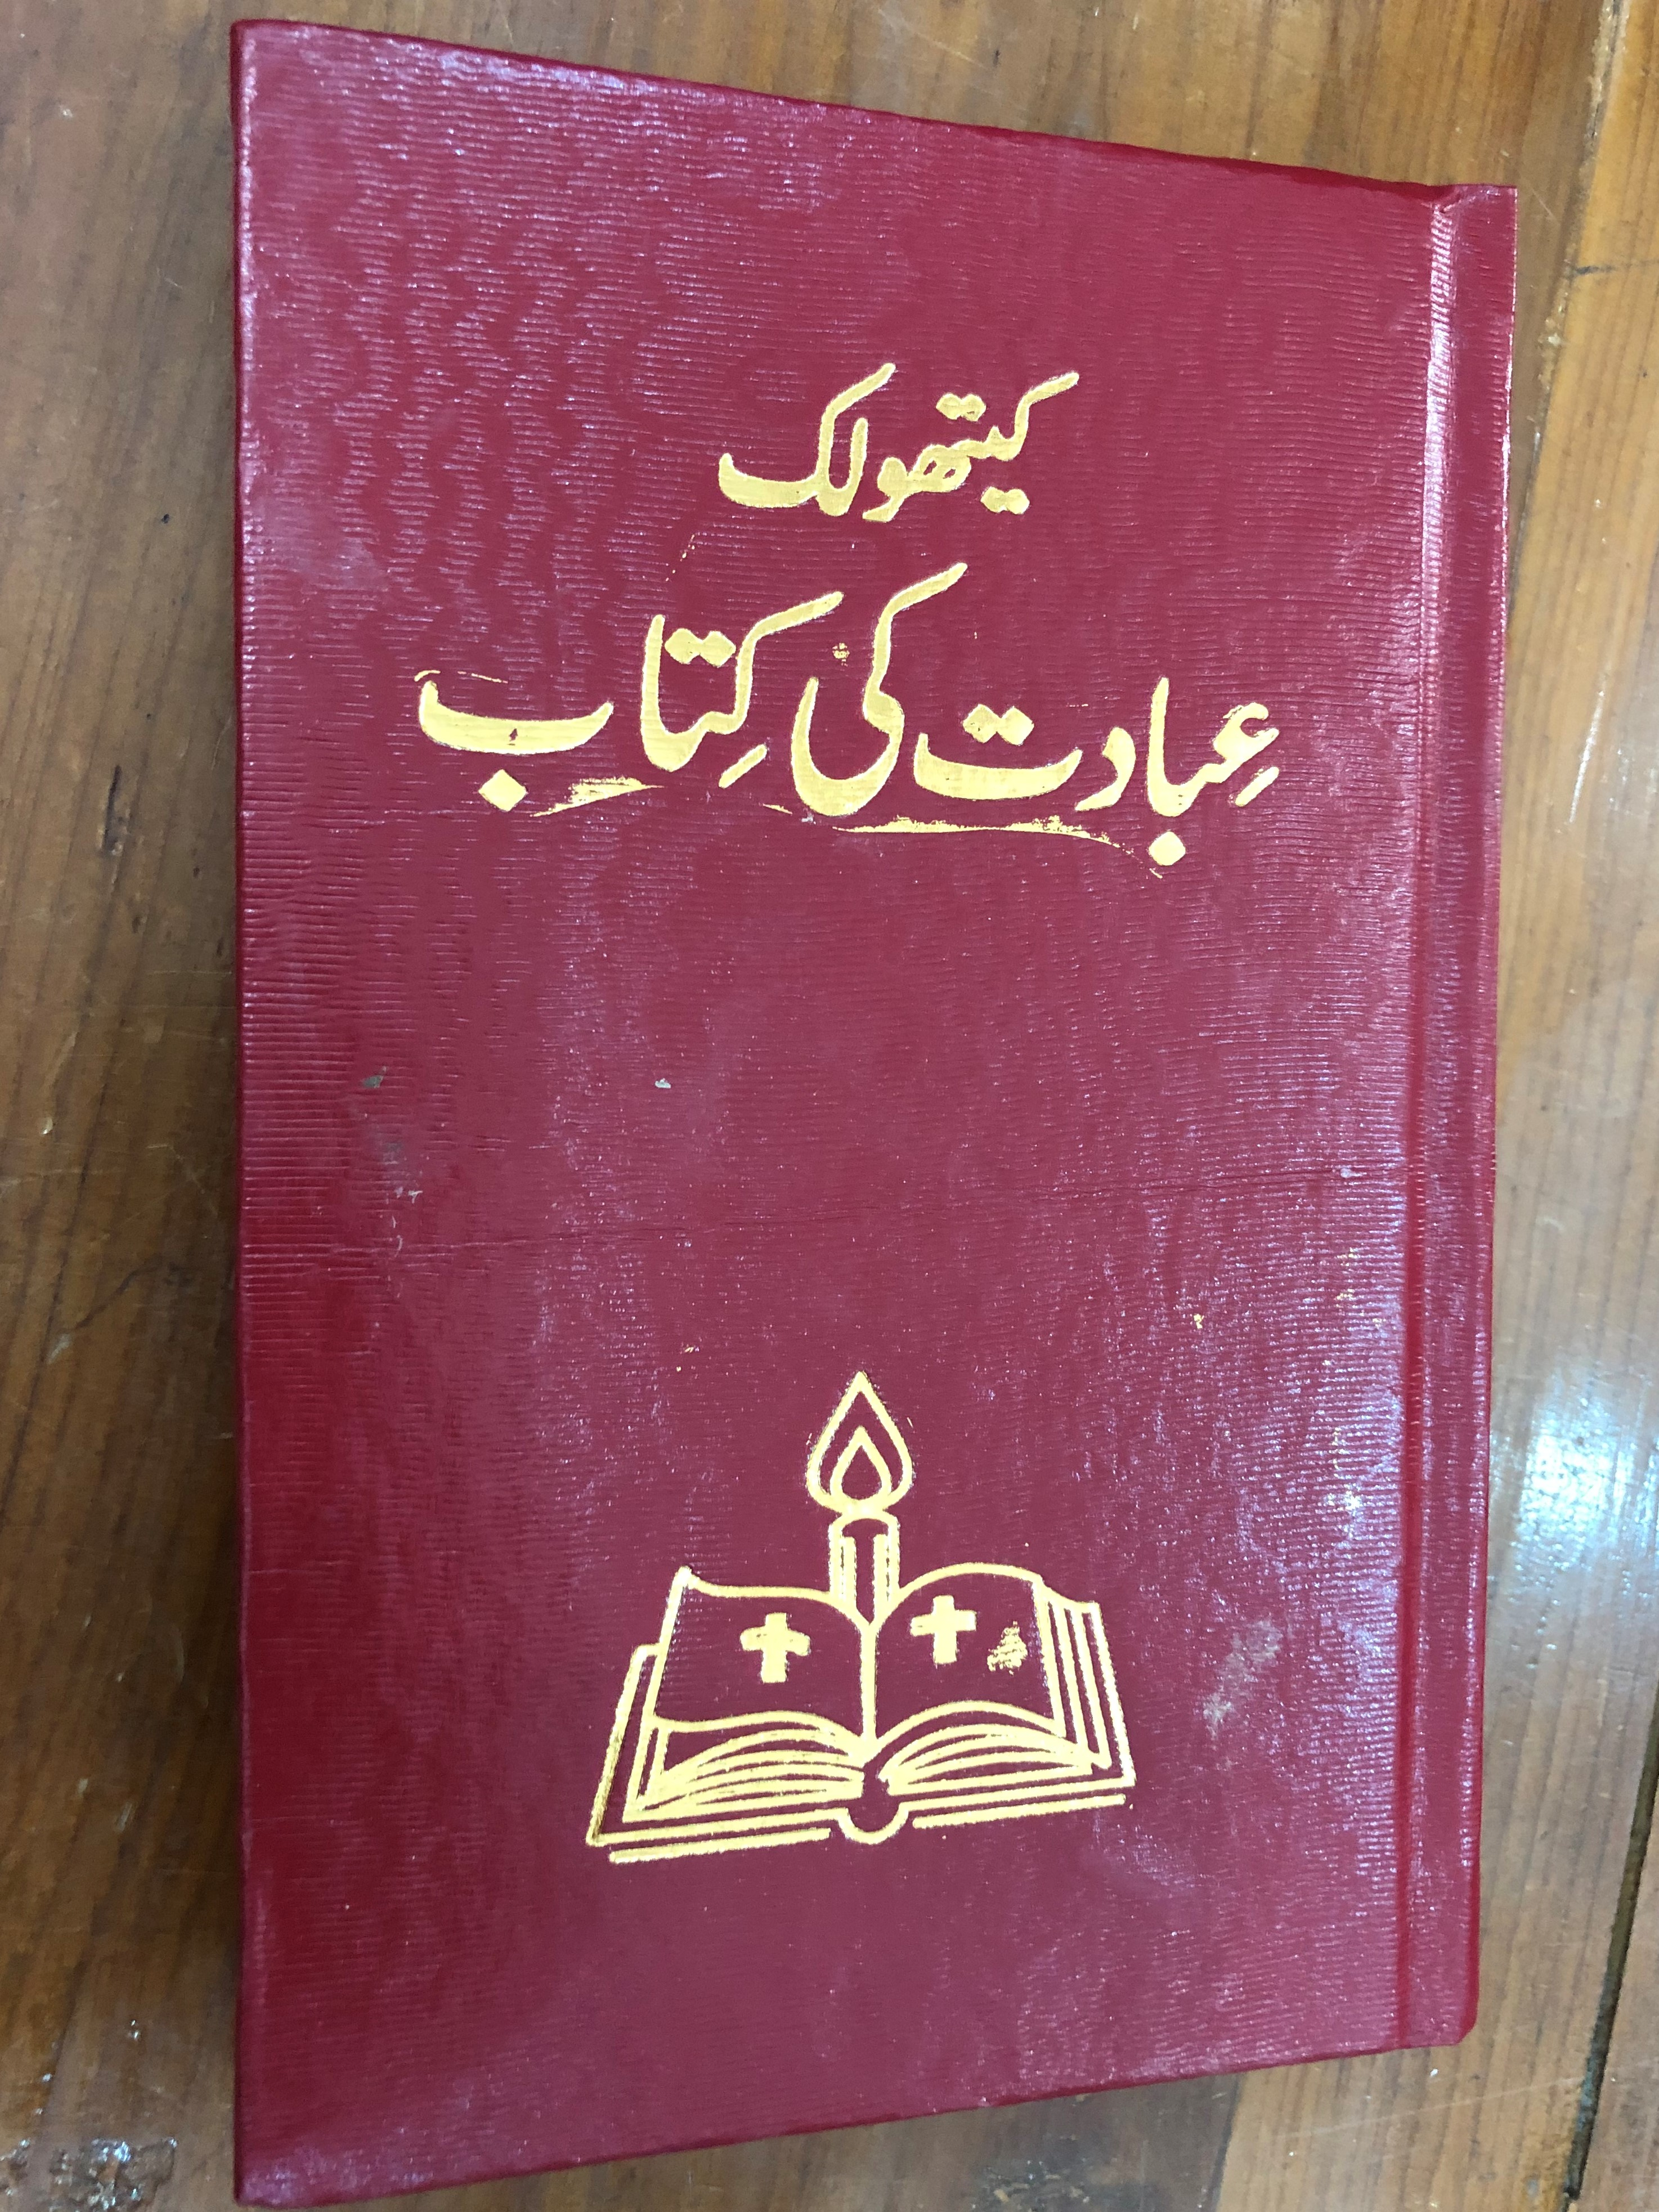 catholic-urdu-prayer-book-compact-size-st.-paul-communication-centre-hardcover-2012-1-.jpg